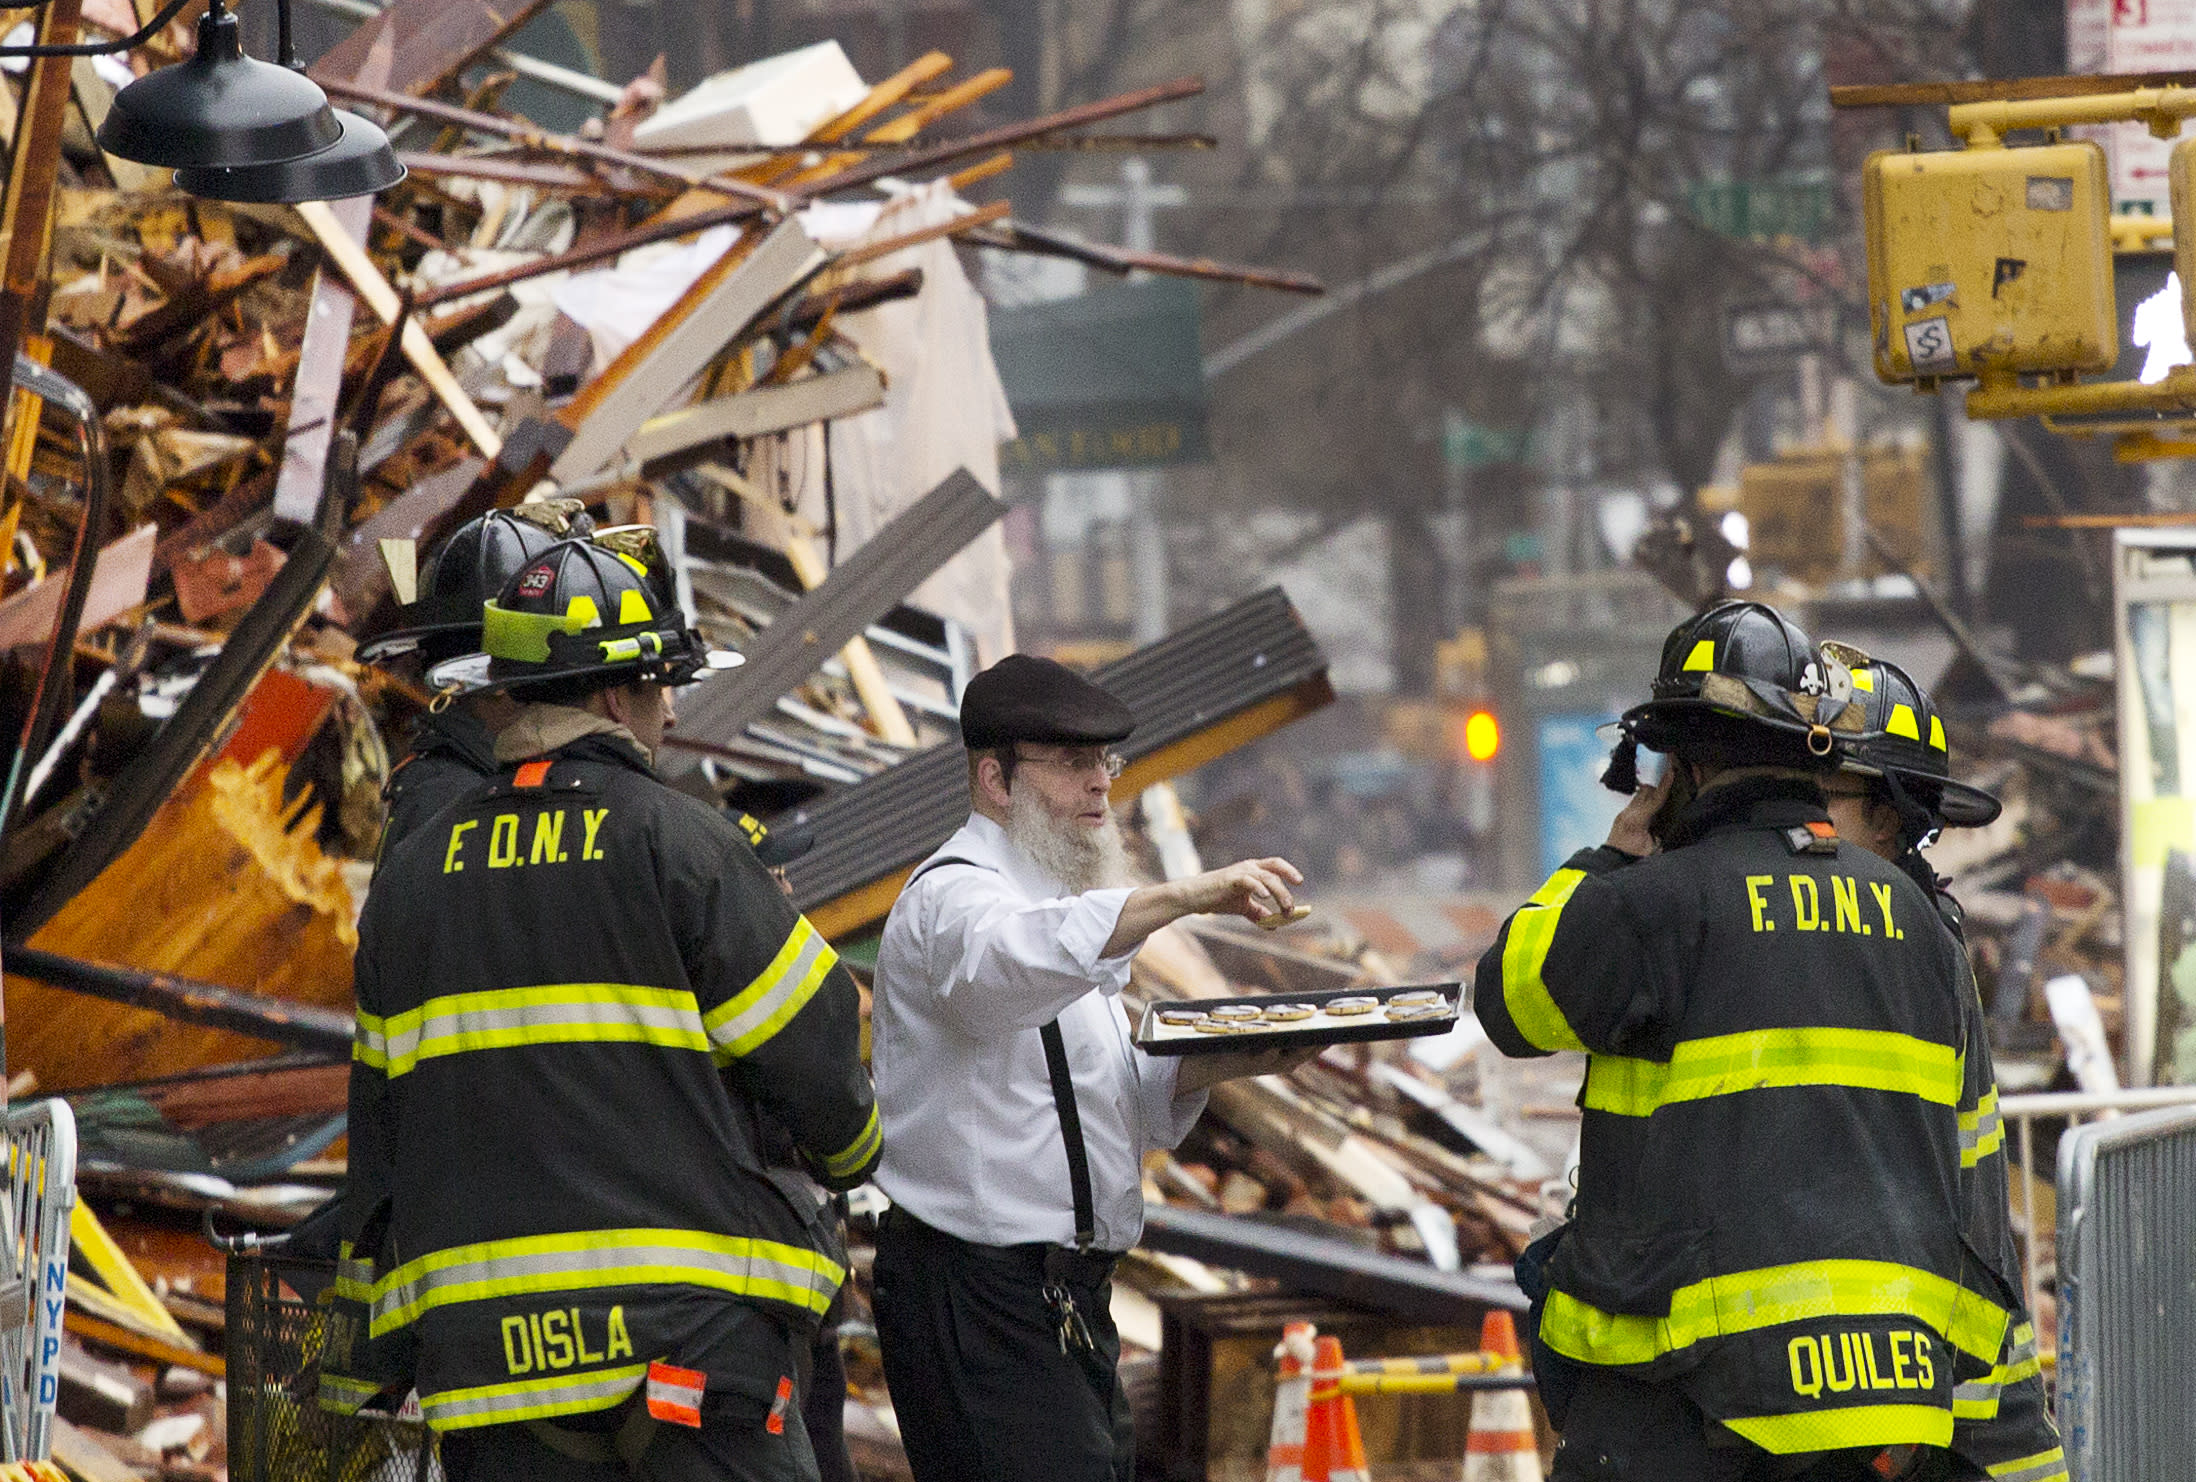 NYC police to determine if 6 missing are connected to blast